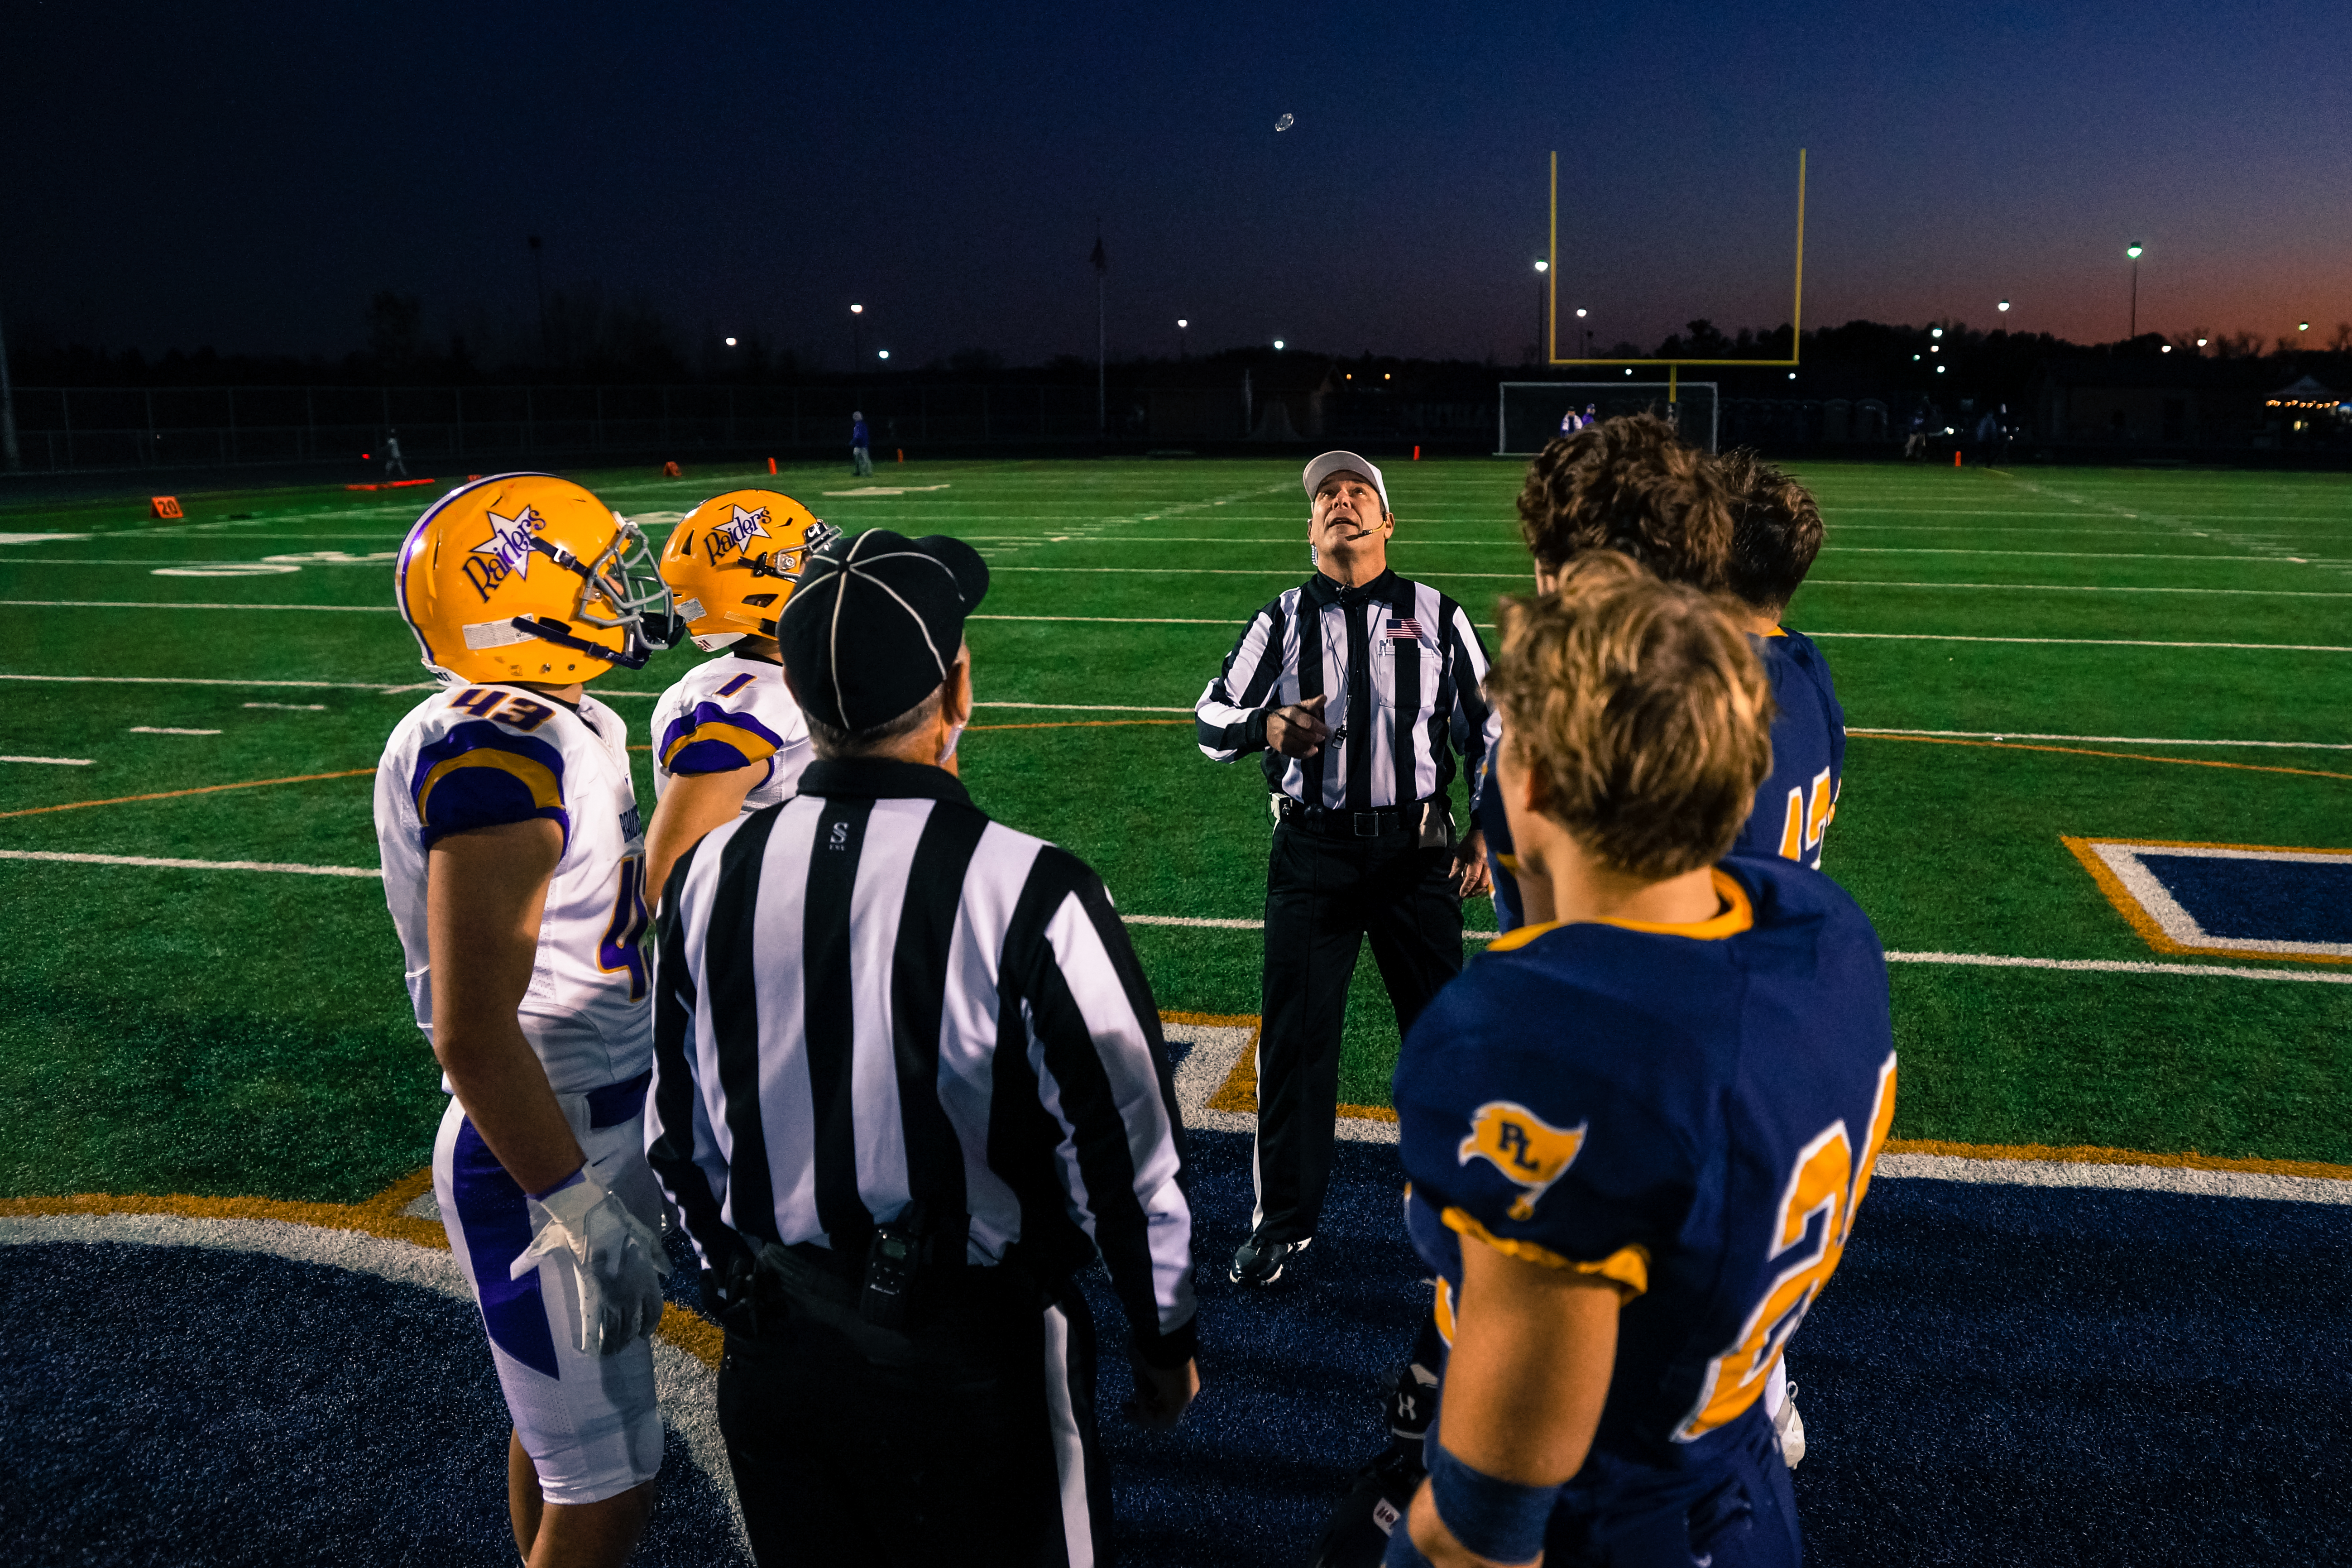 Cretin-Derham Hall and Prior Lake players watch the coin toss ahead of a Class 6A state tournament first round matchup on Oct. 15, 2019. The Raiders will begin their inaugural season in Class 5A on Sept. 2 against Spring Lake Park. Photo by Korey McDermot